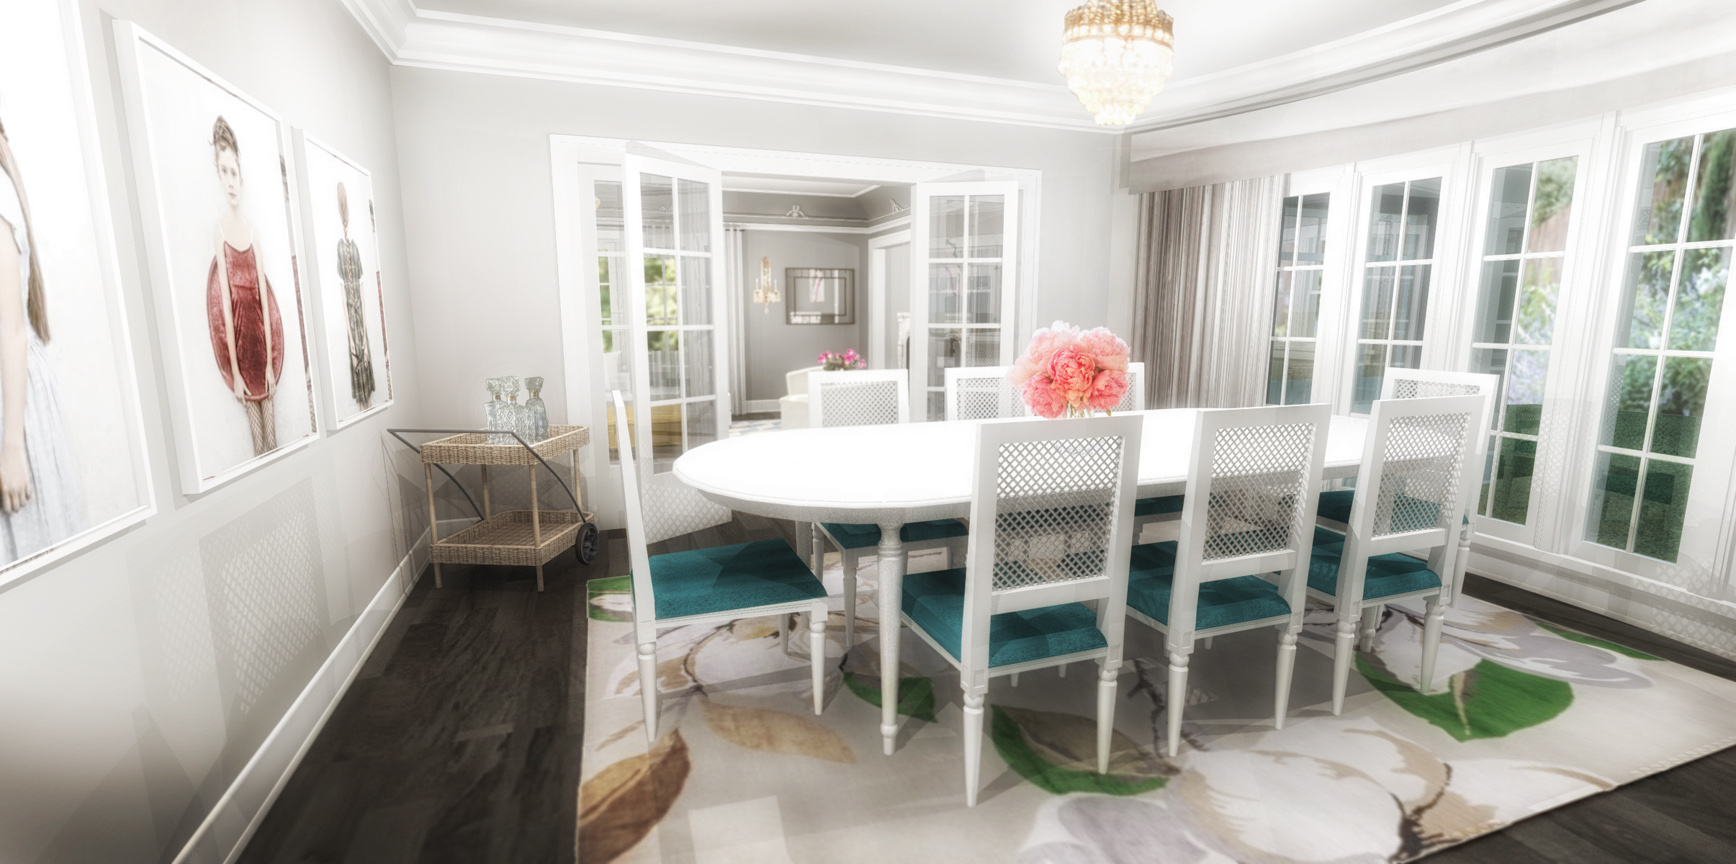 FORMAL DINING ROOM - RENDERING